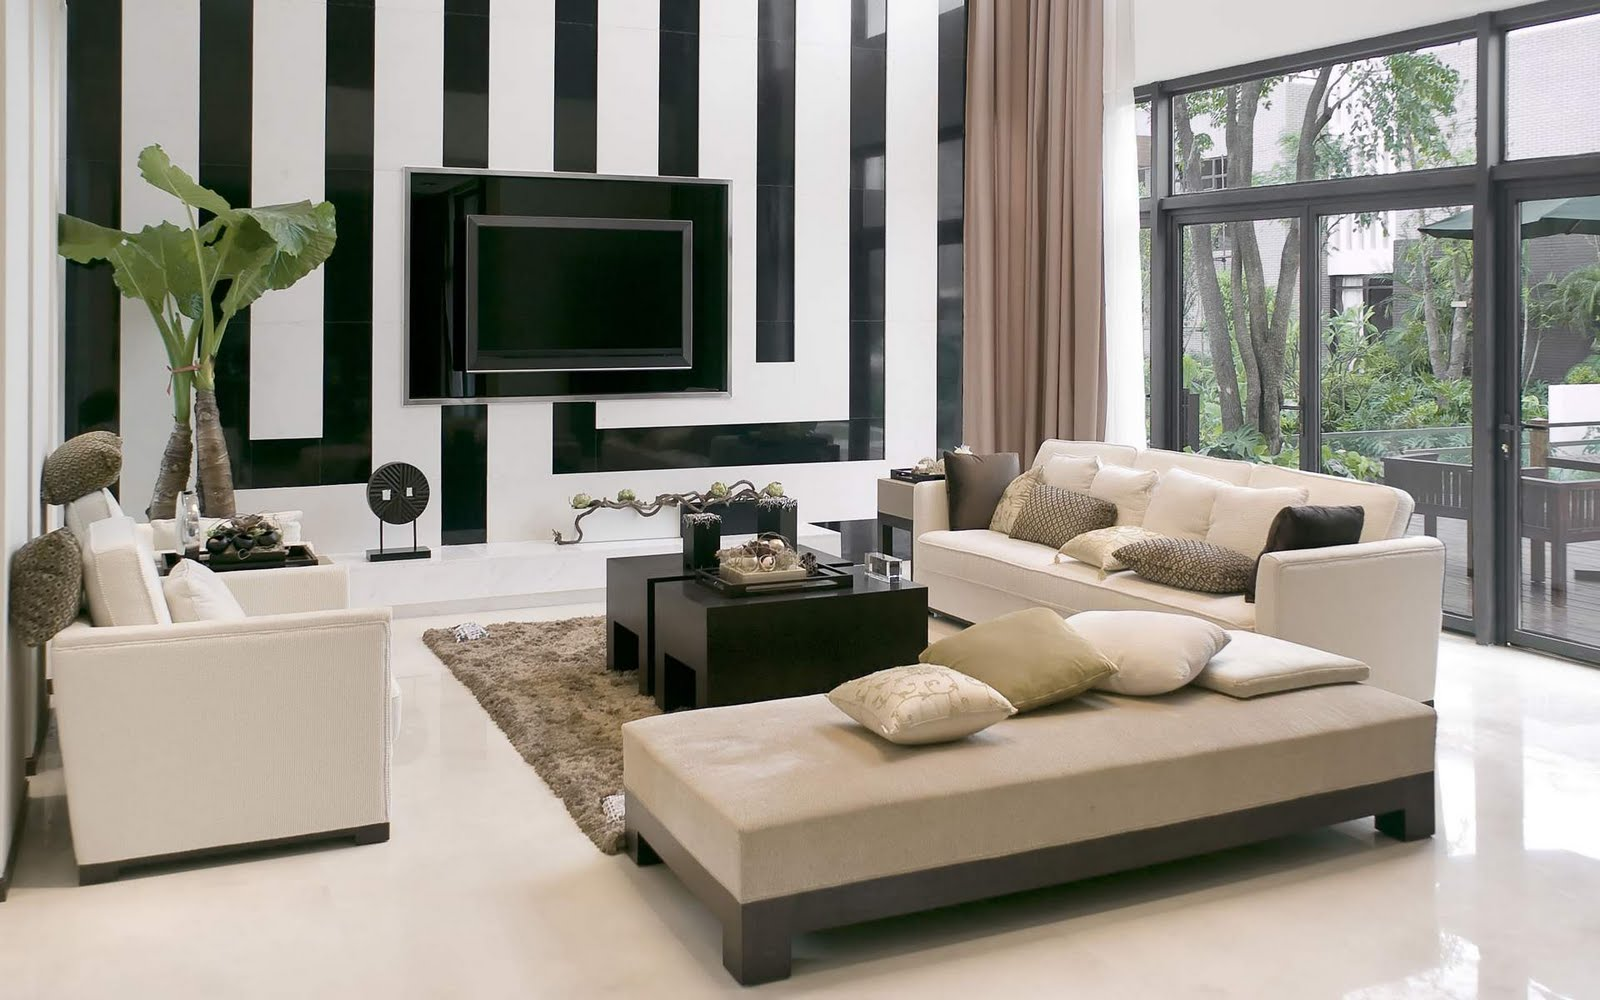 Home Decors That Will Make You Re-Think About Your Own (8)